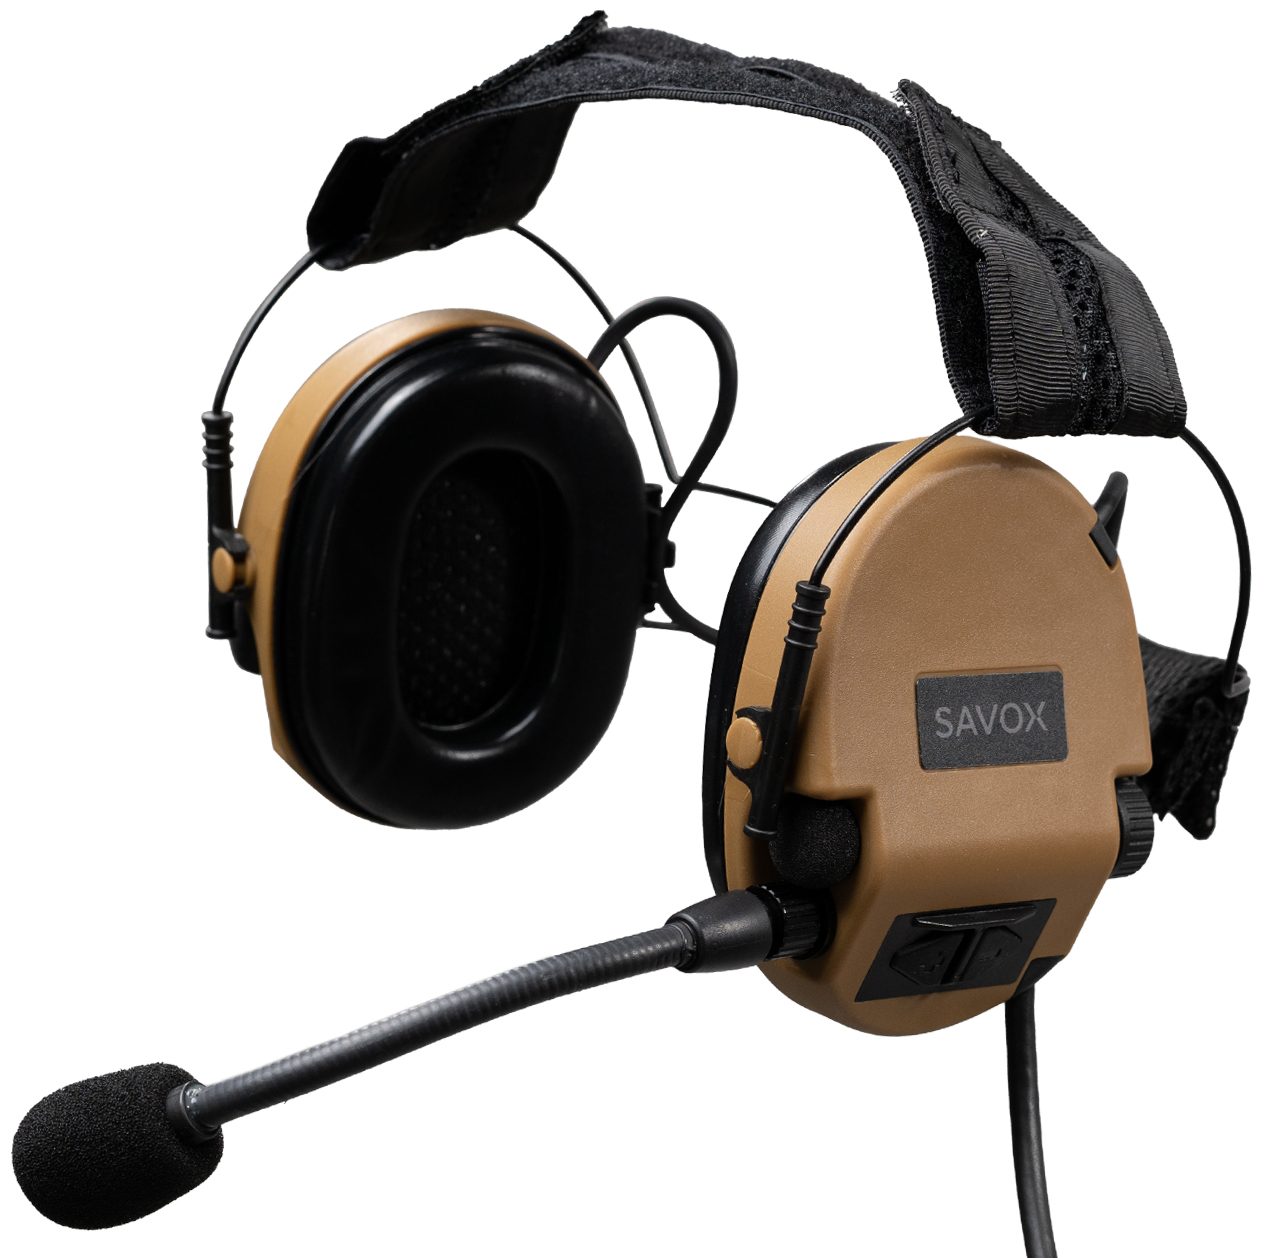 NOISE-COM 200 headset in Coyote Brown color